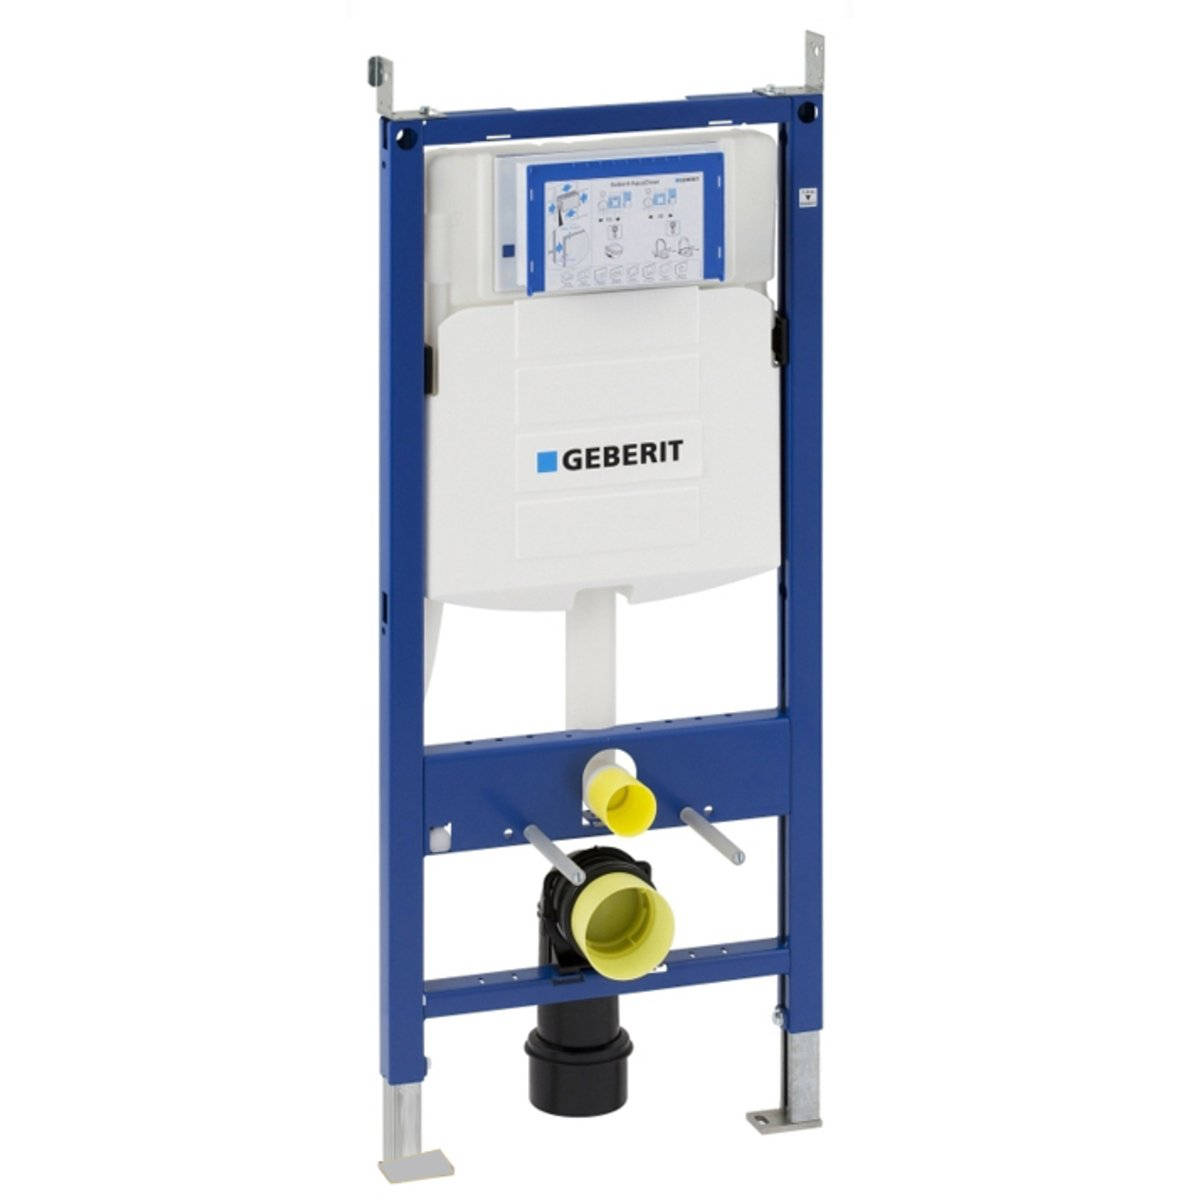 Geberit duofix wc element h112 inclusief reservoir up320 for Geberit products